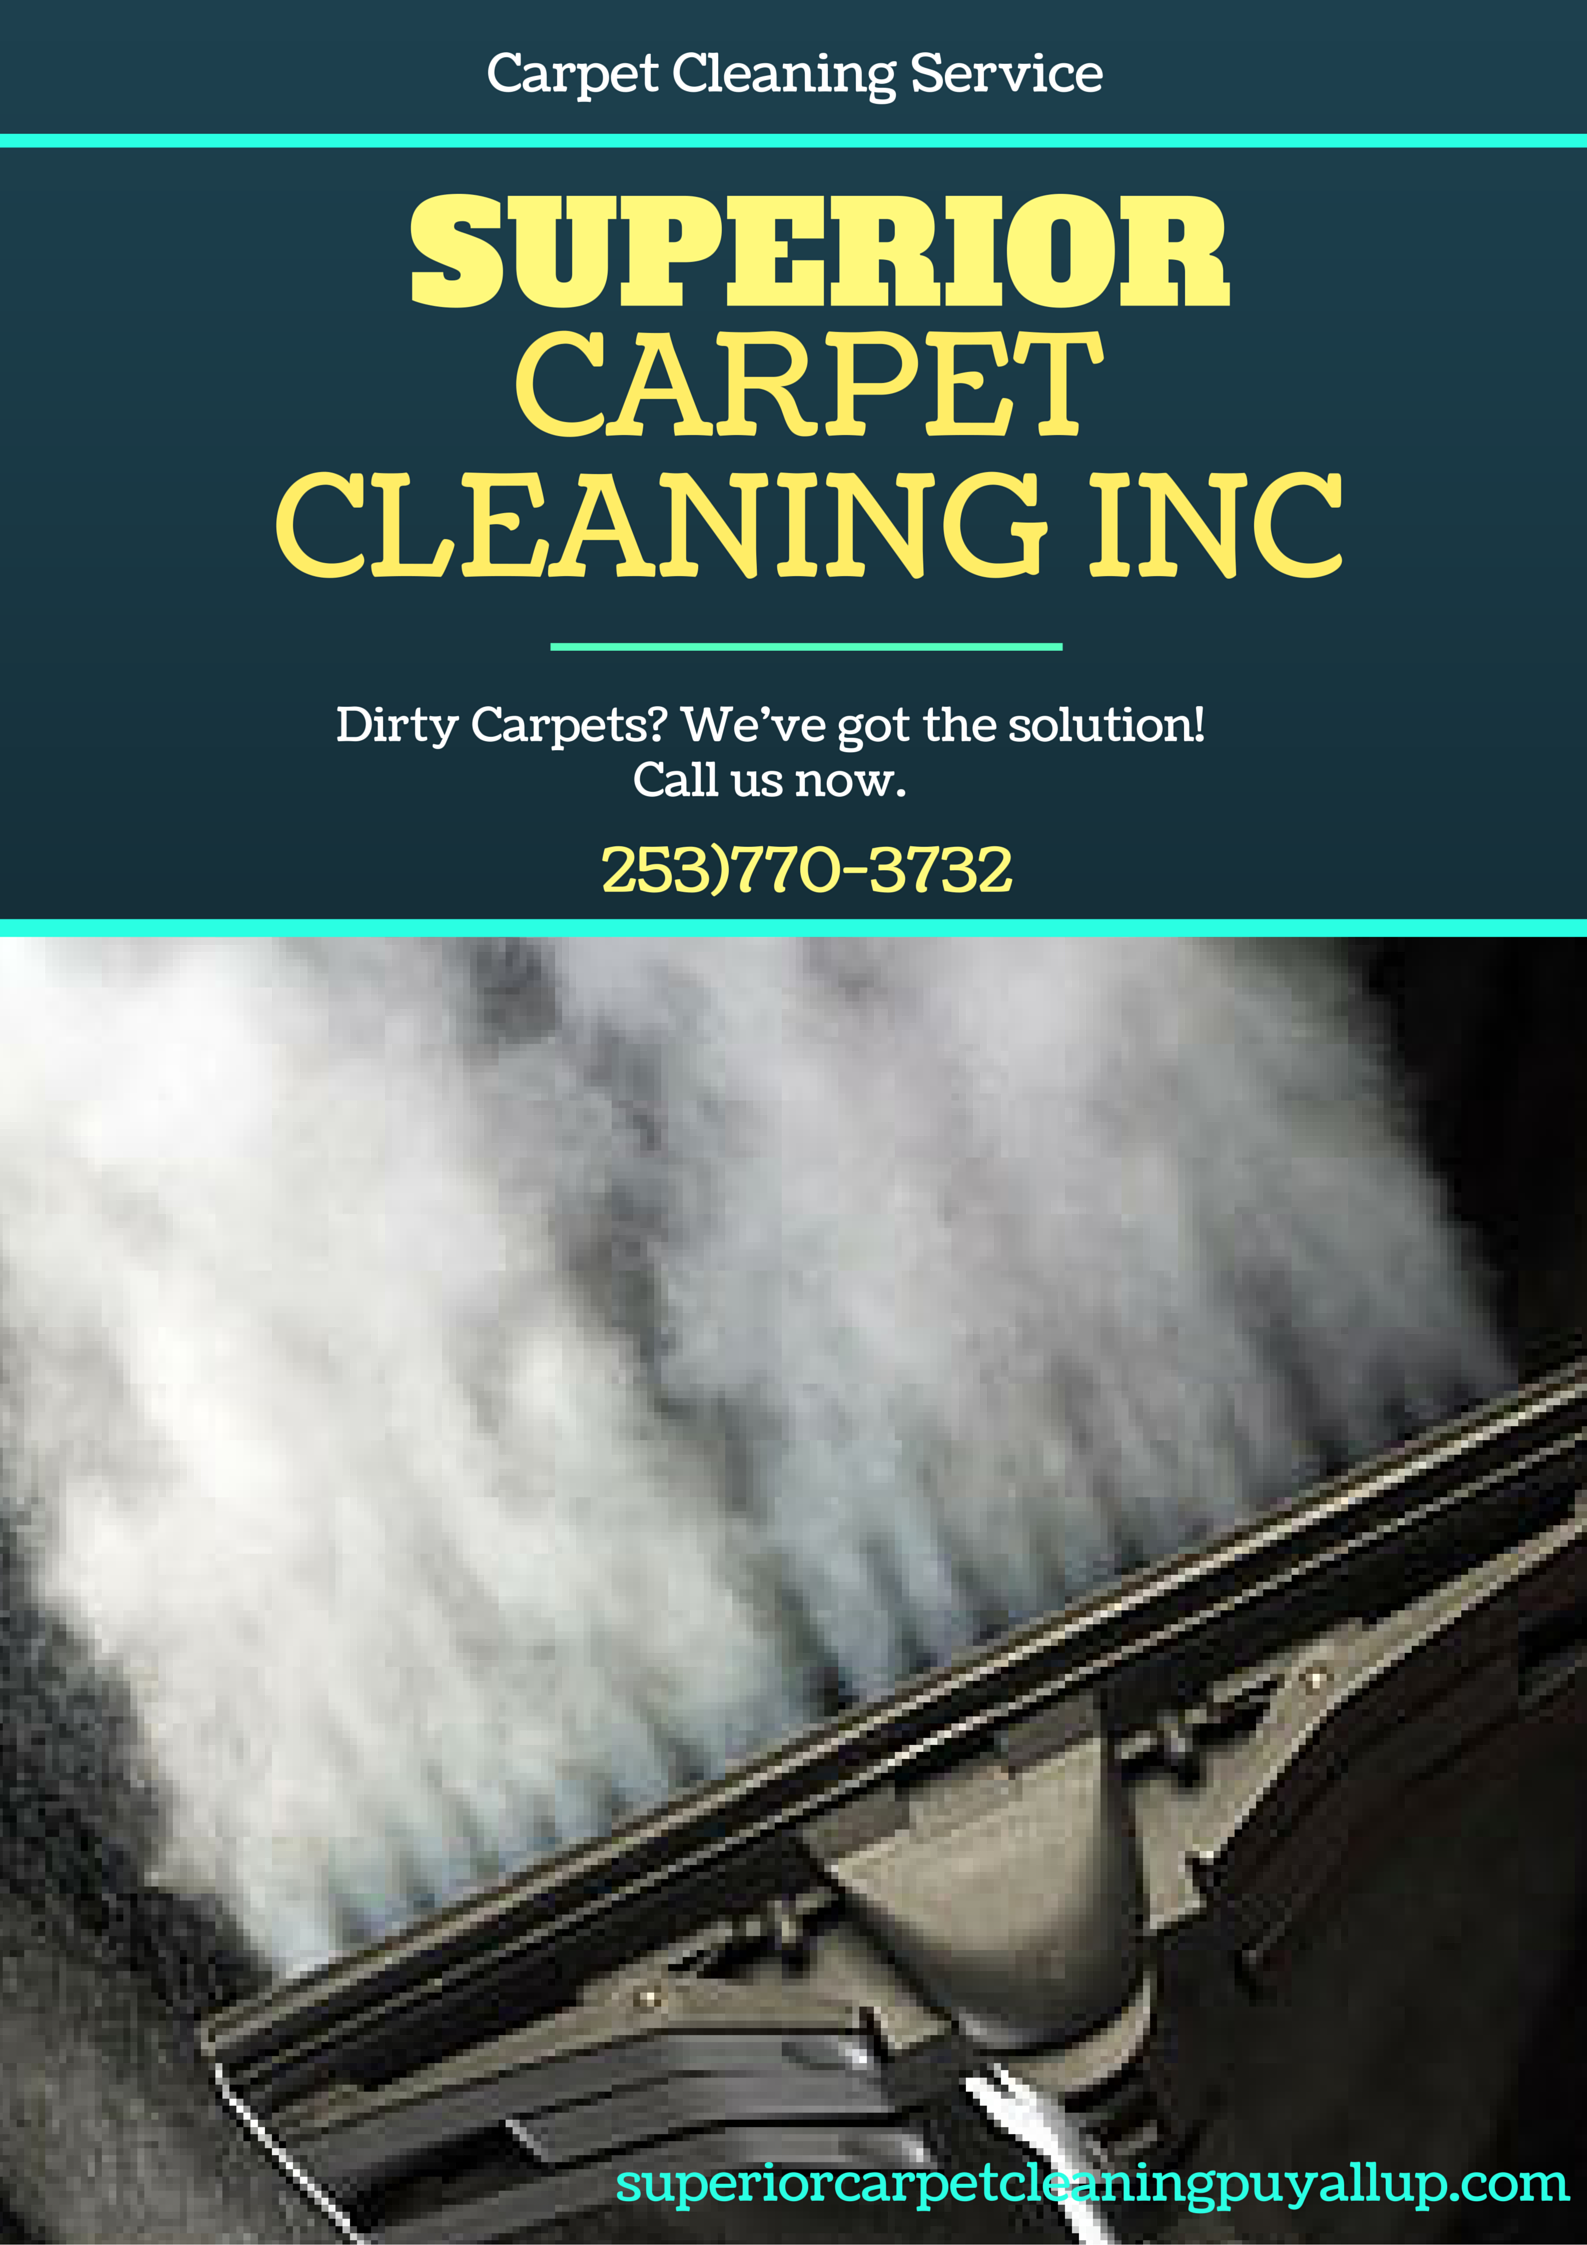 SuperiorCarpetCleaningInc We're Located at Puyallup, WA